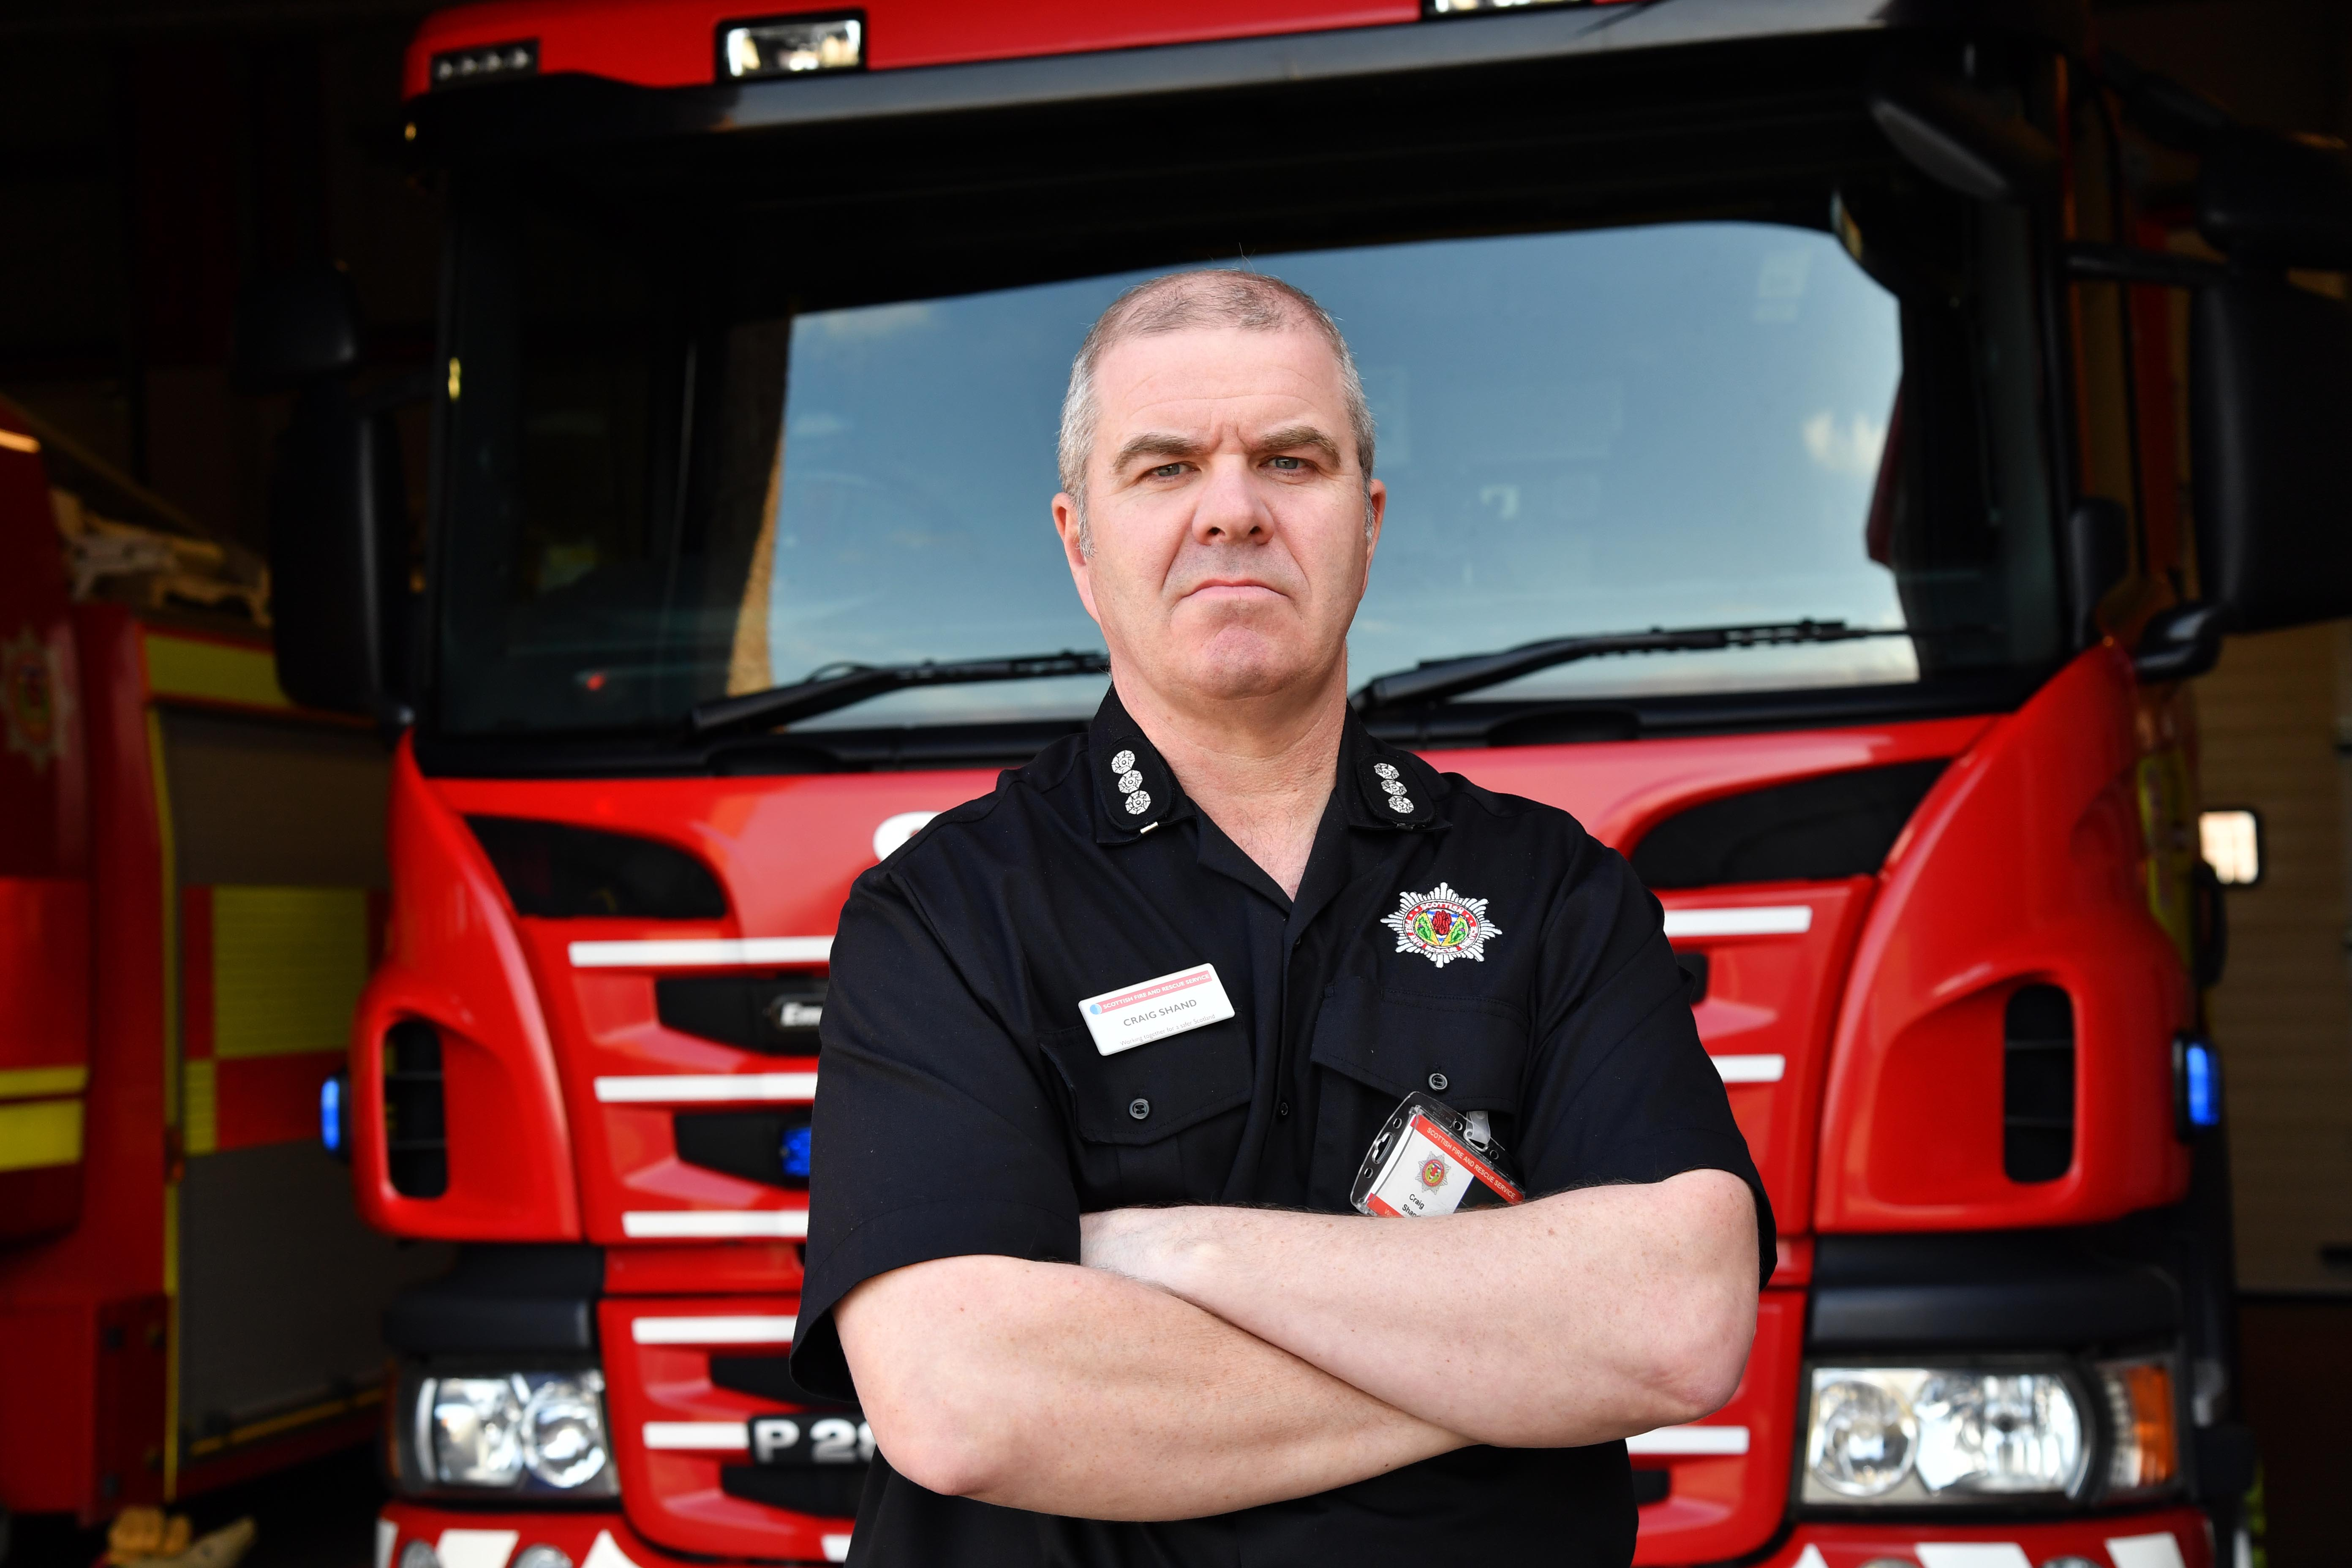 Craig Shand, Peterhead Station Manager, for the Scottish Fire and Rescue Service